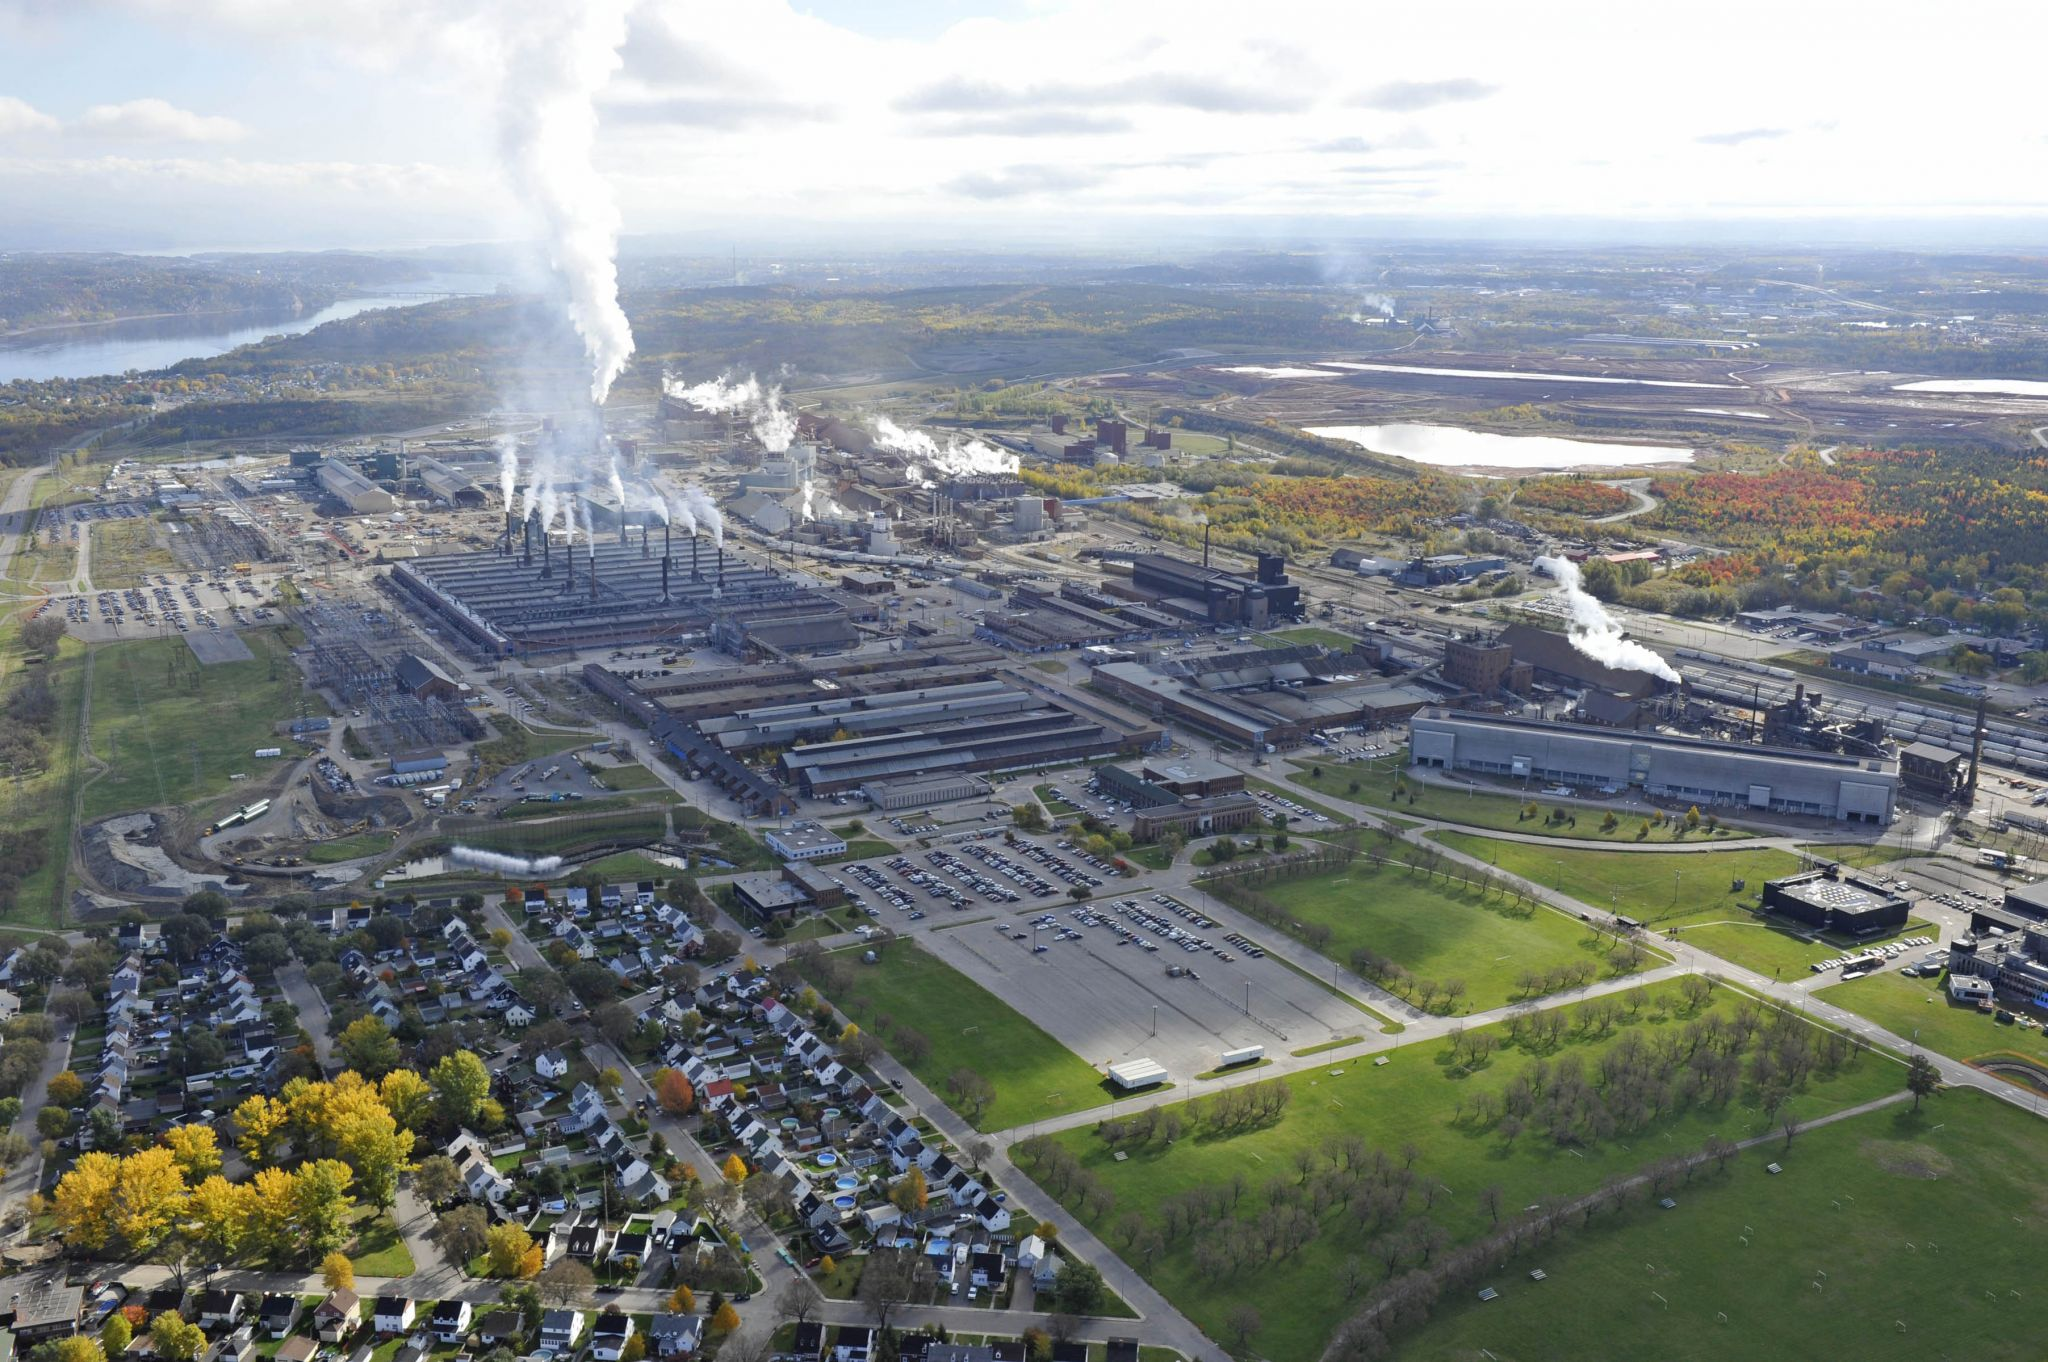 The AP60 Phase 1 project, involving new aluminum-smelting technology in an upgraded facility in Jonquière, Que., was named Project of the Year by the Project Management Institute (PMI). Photos courtesy PMI